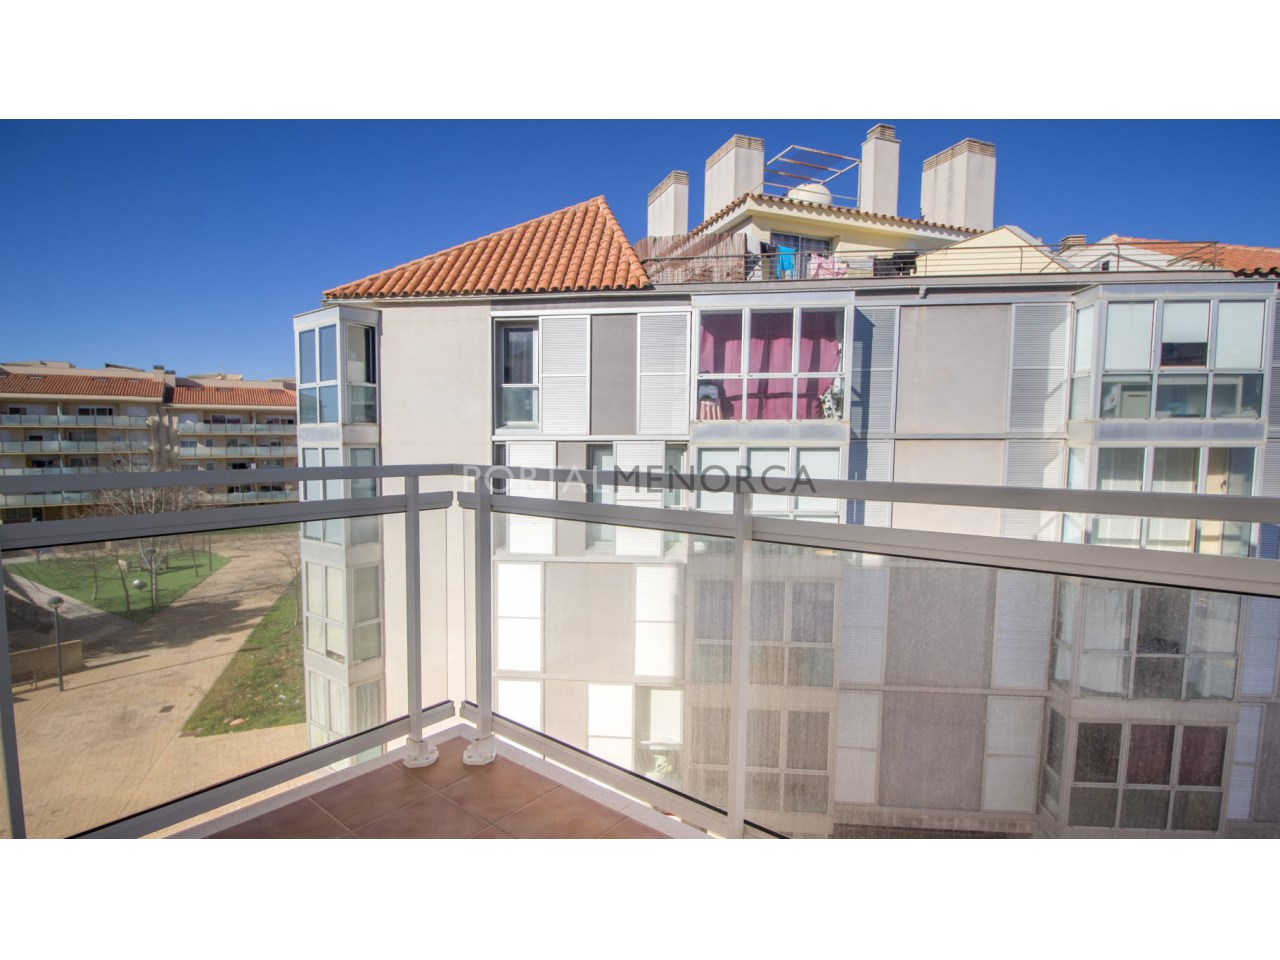 Apartment with 3 bedrooms for sale in Mahón